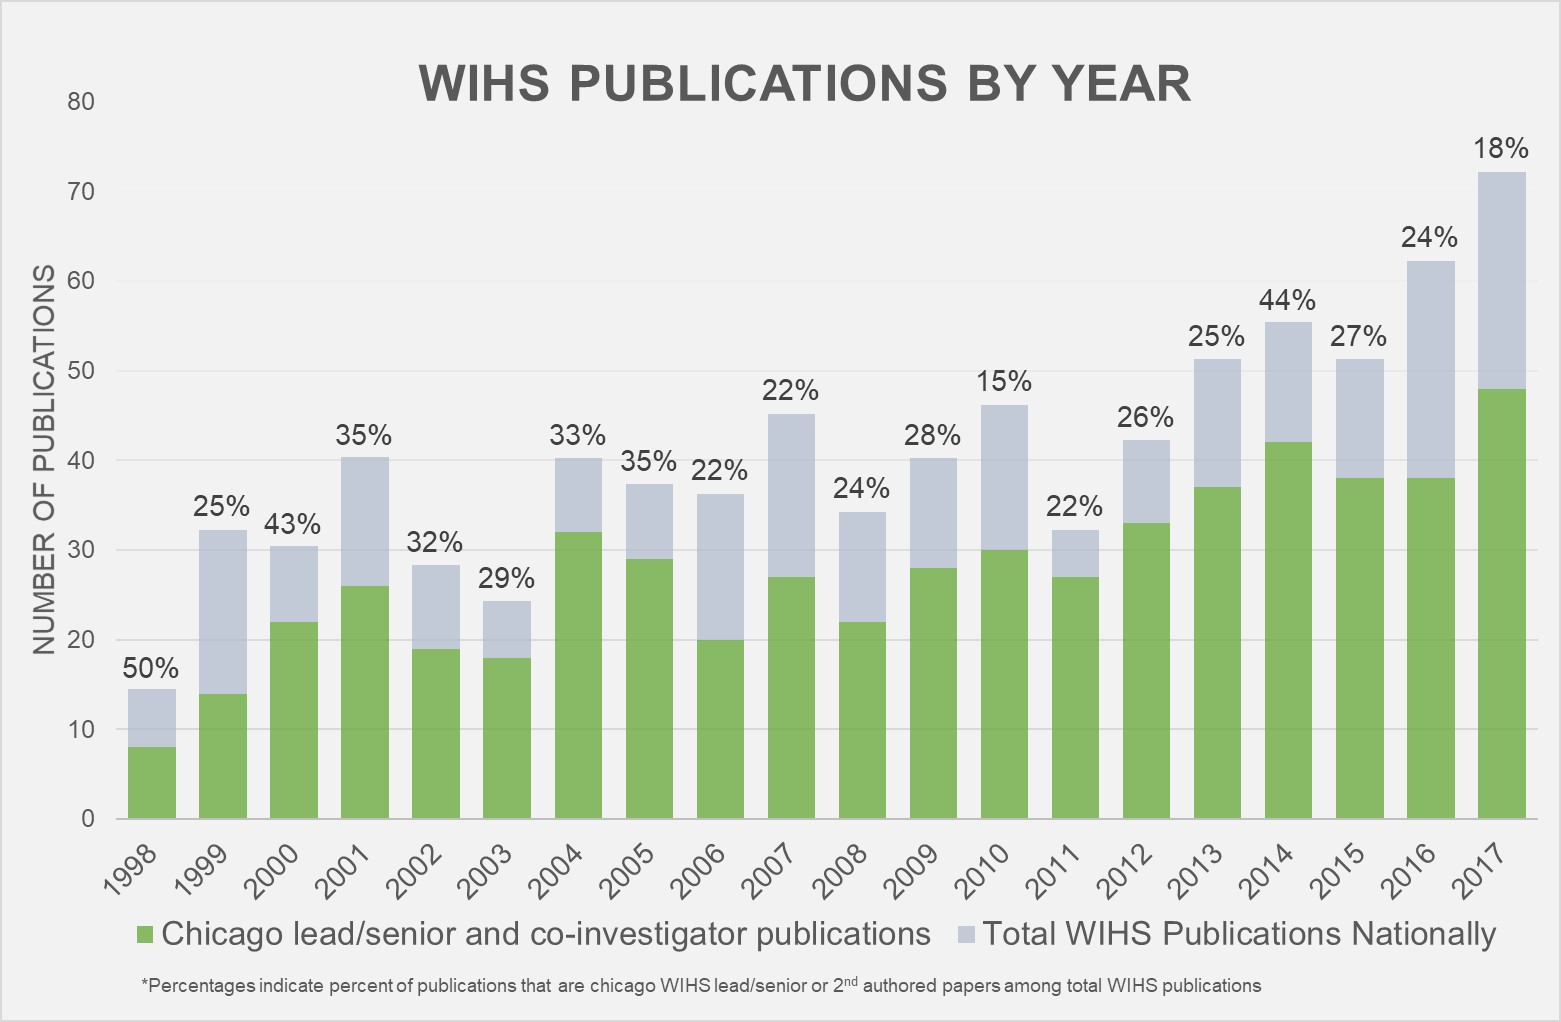 WIHS publications by year